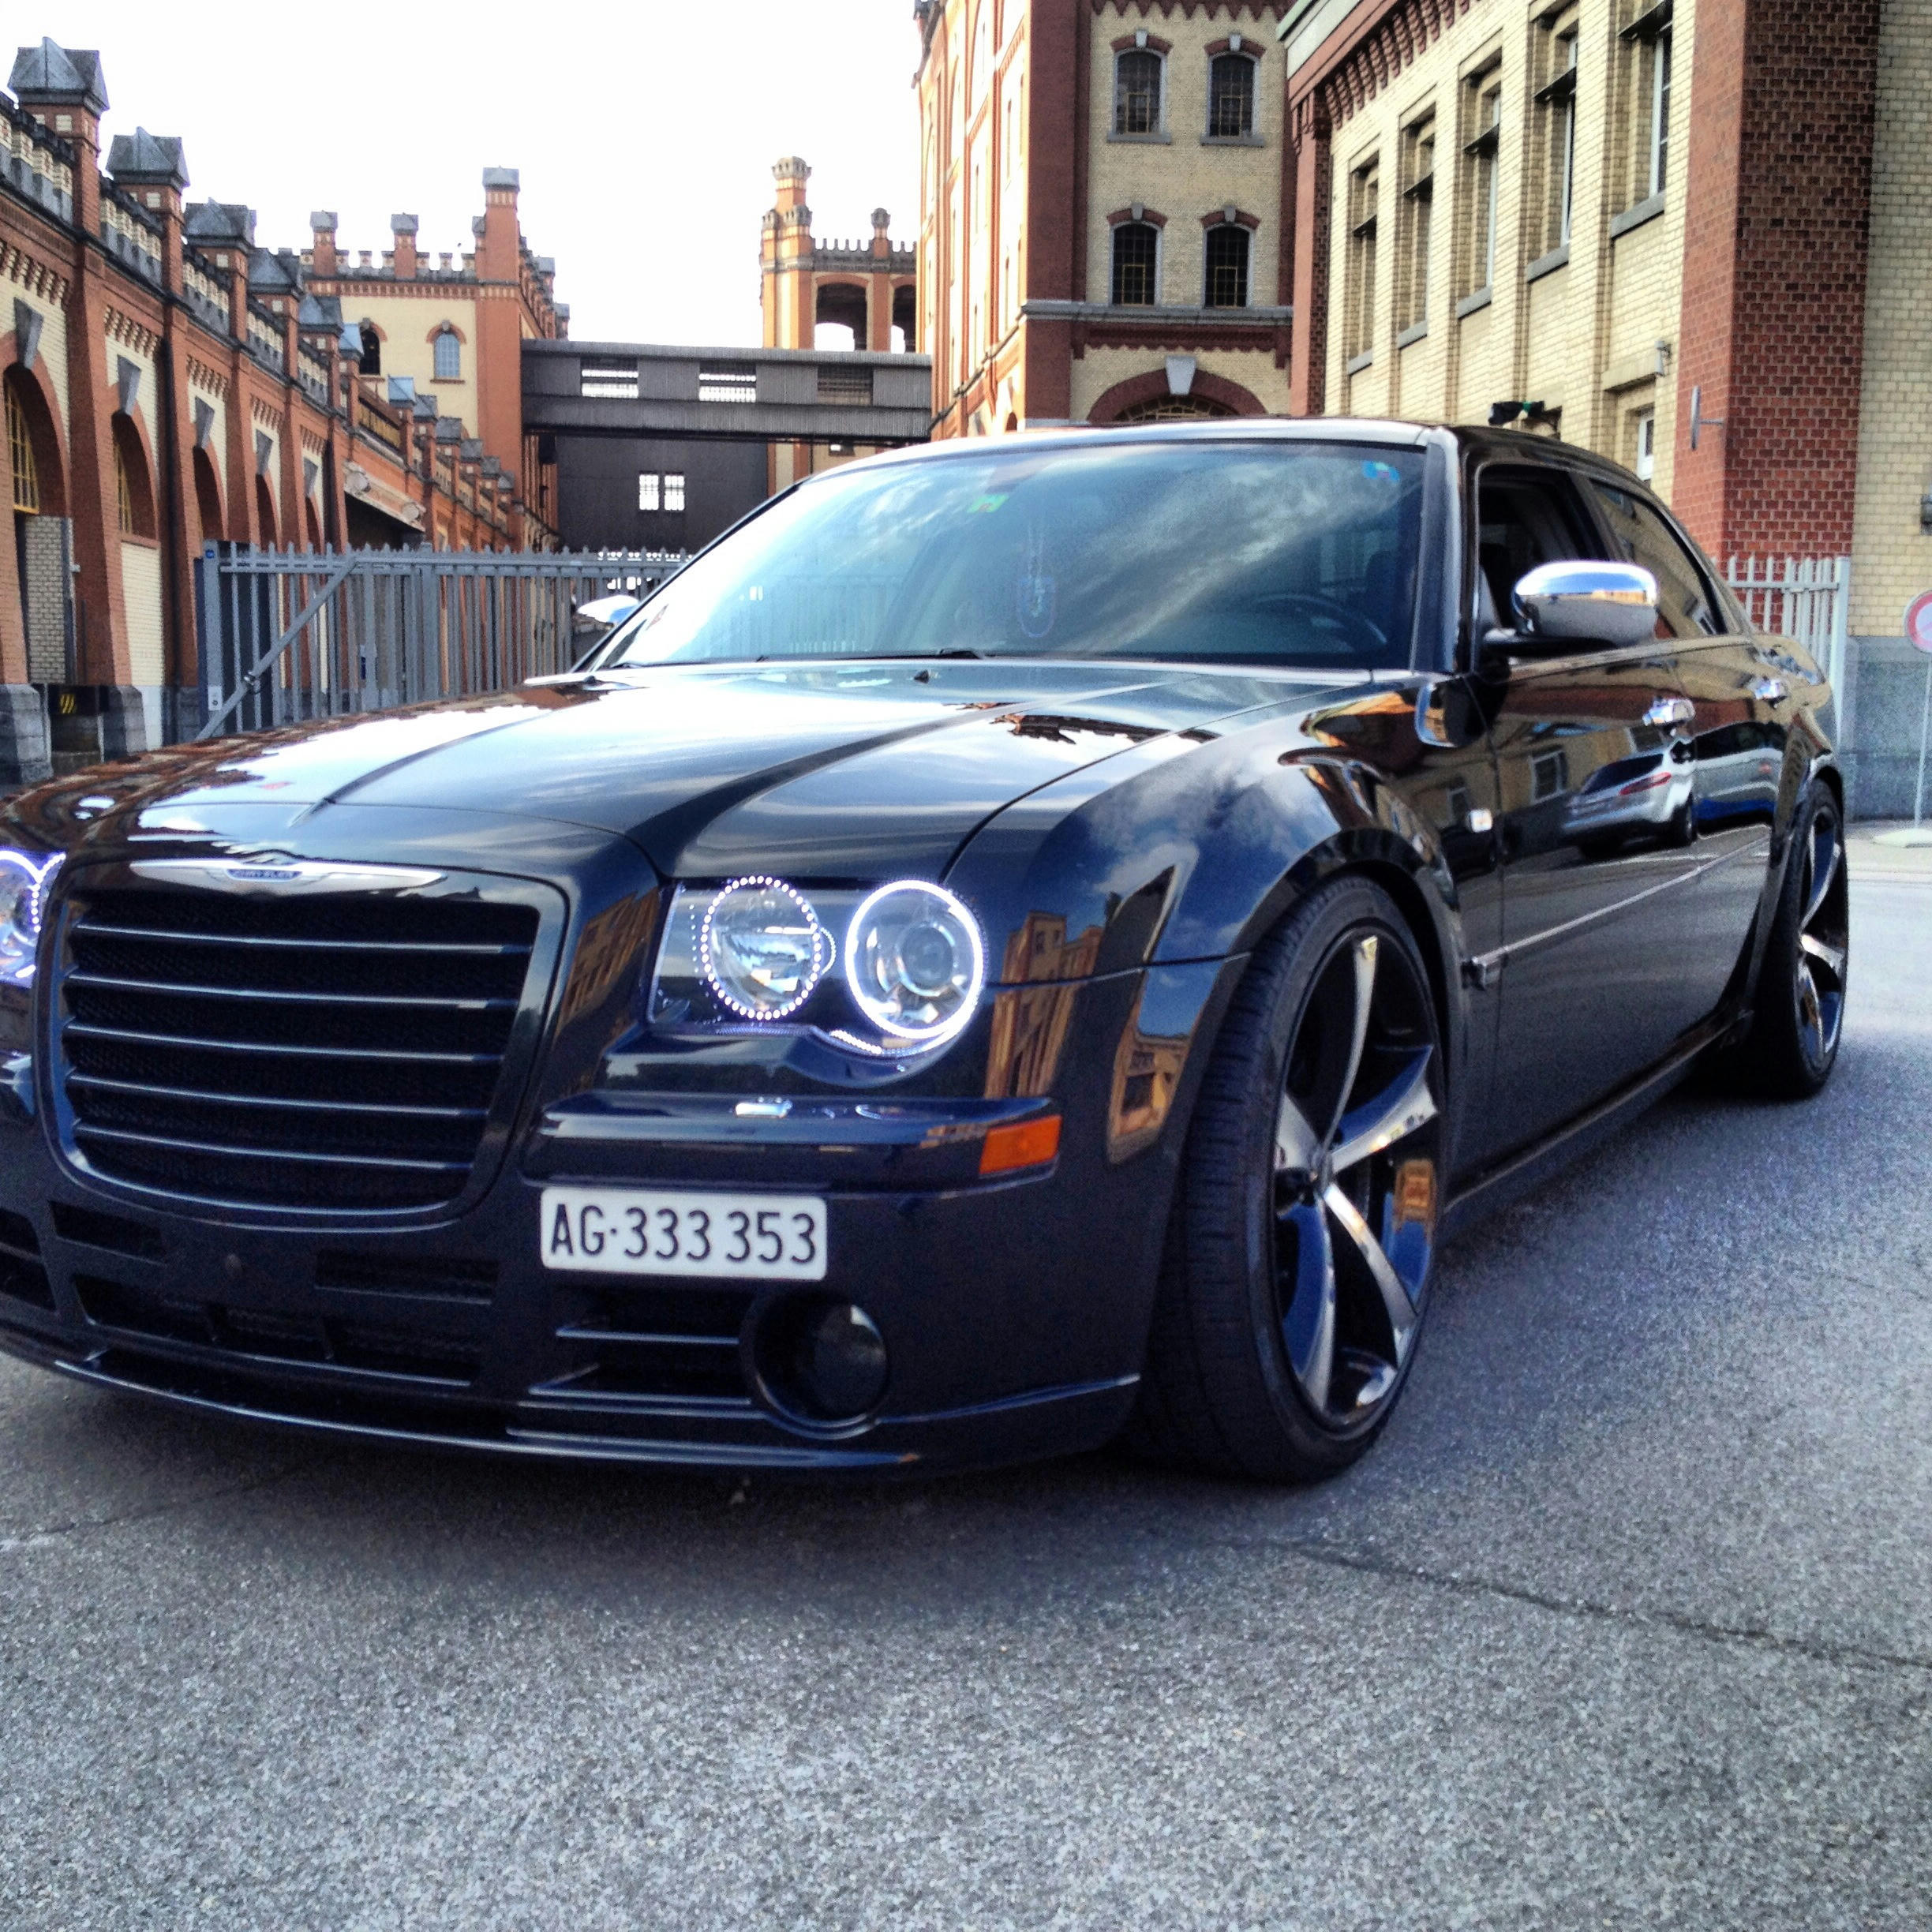 Chrysler 300c Forum 300c: Lets See Your 300c (photos Please)